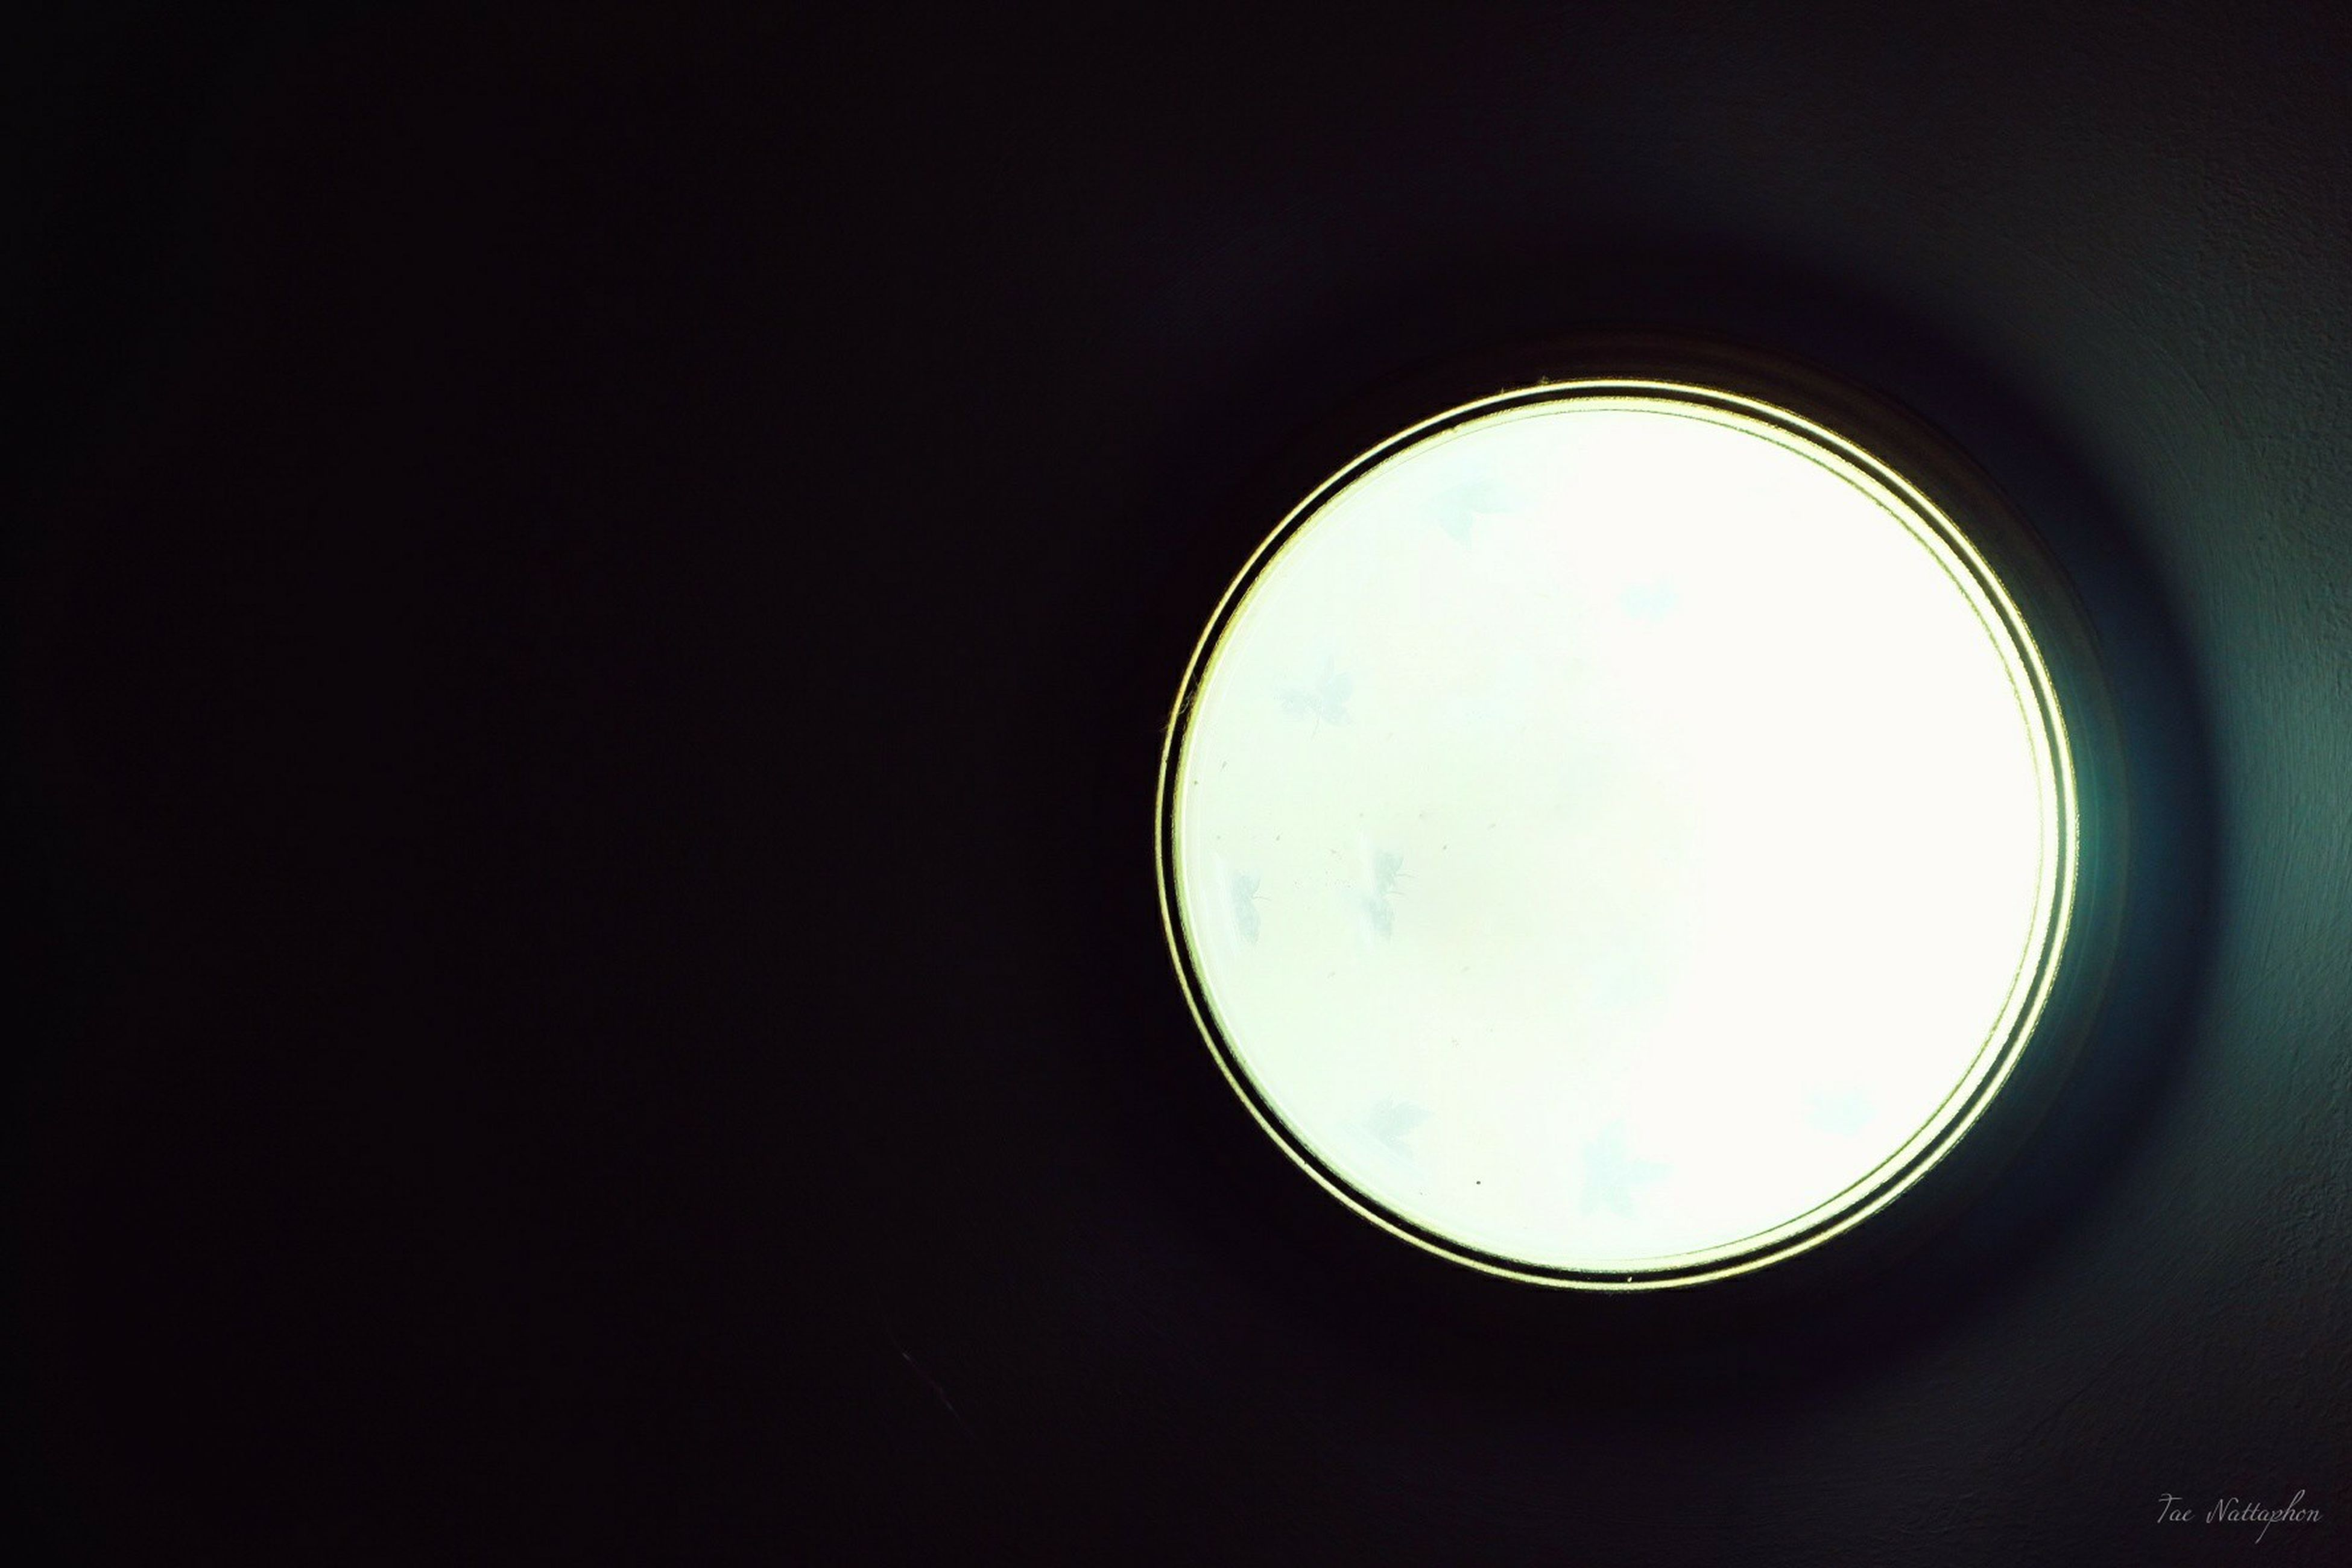 indoors, circle, copy space, window, geometric shape, glass - material, transparent, low angle view, dark, clear sky, shape, close-up, round, no people, reflection, sky, circular, lighting equipment, ceiling, silhouette